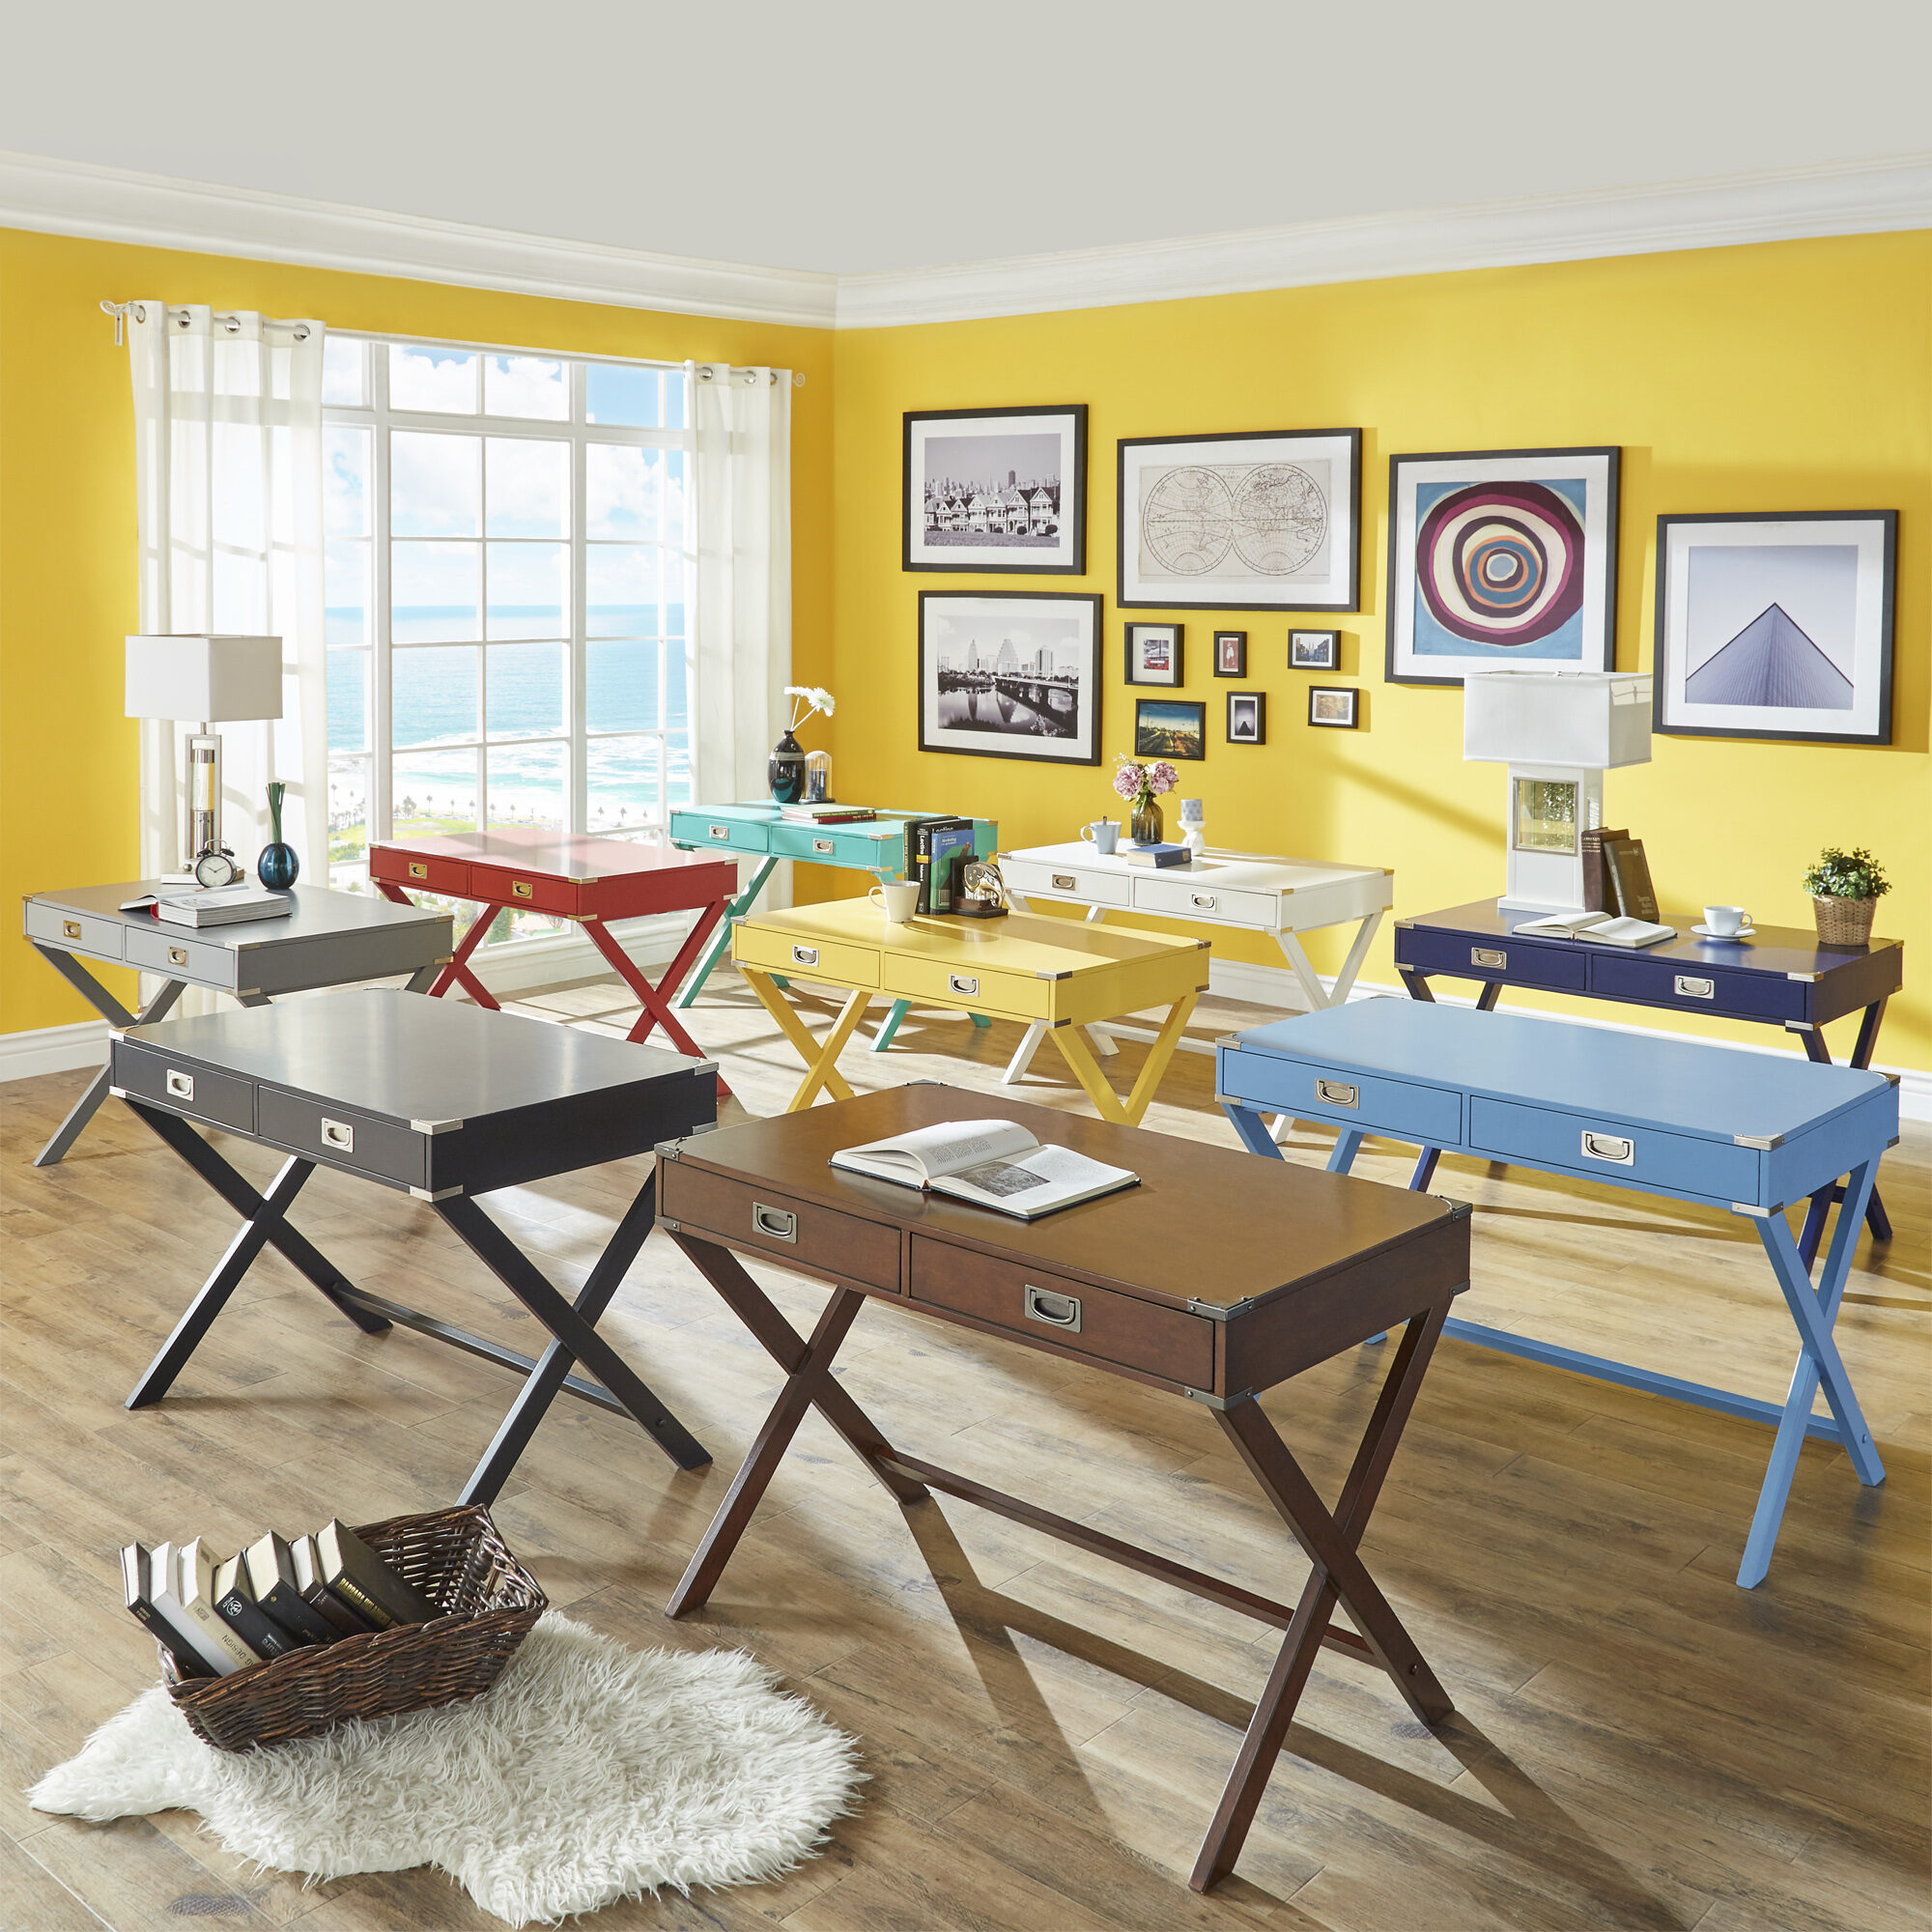 The first of the kids' bedroom ideas is to pick out a desk. Here is a two-drawer, X-shaped base desk that comes in a variety of different colors, from neutrals to brights.